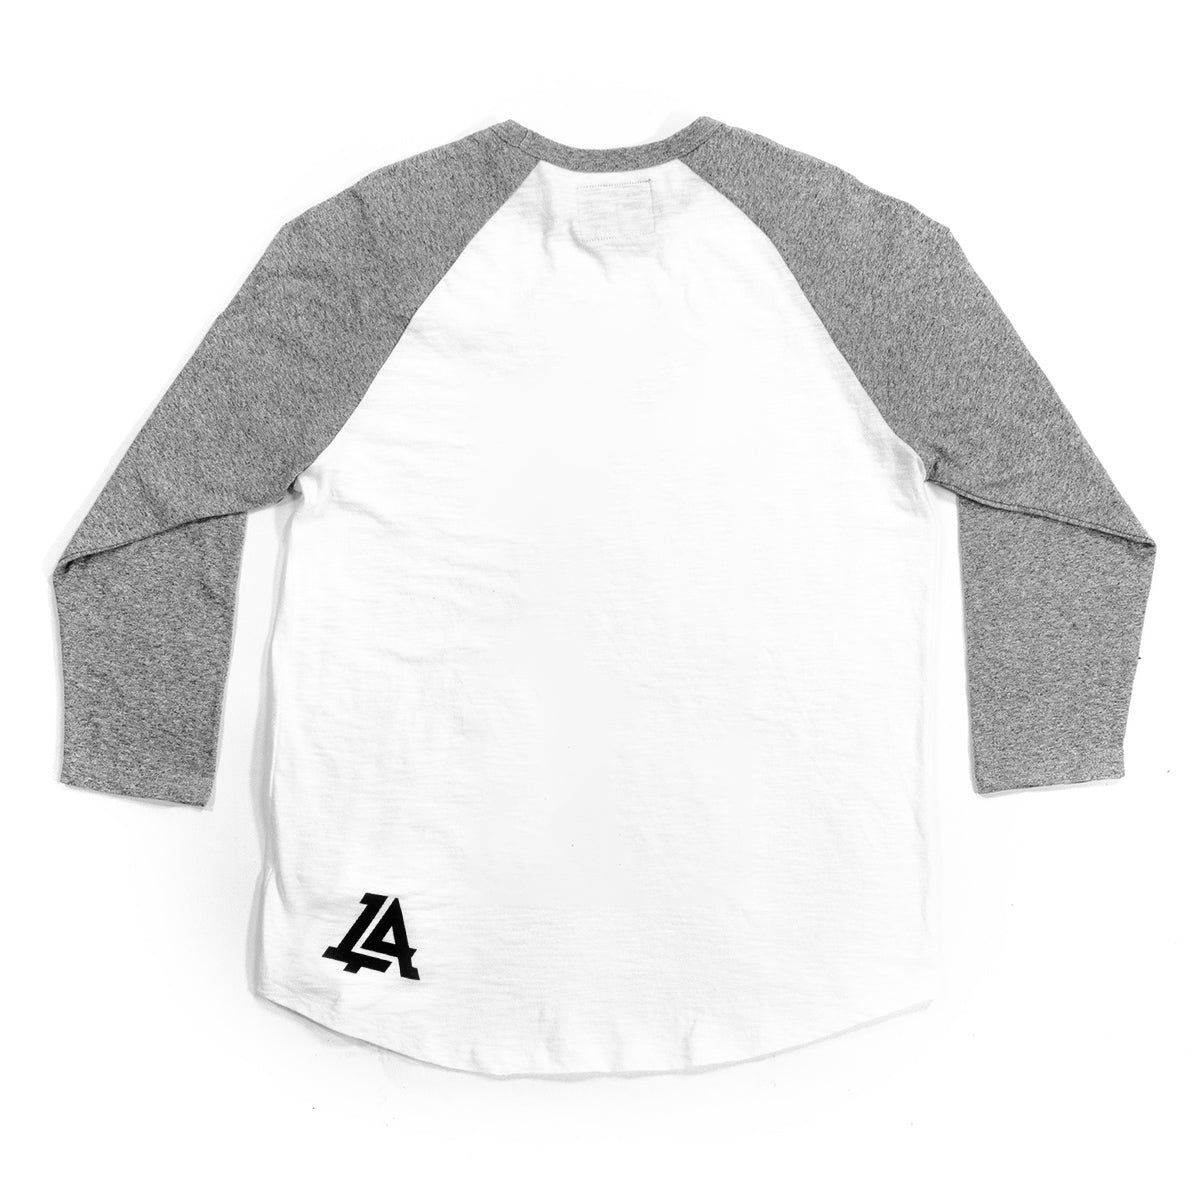 Lost Art Canada - white and grey blessed virgin mary baseball tee back view